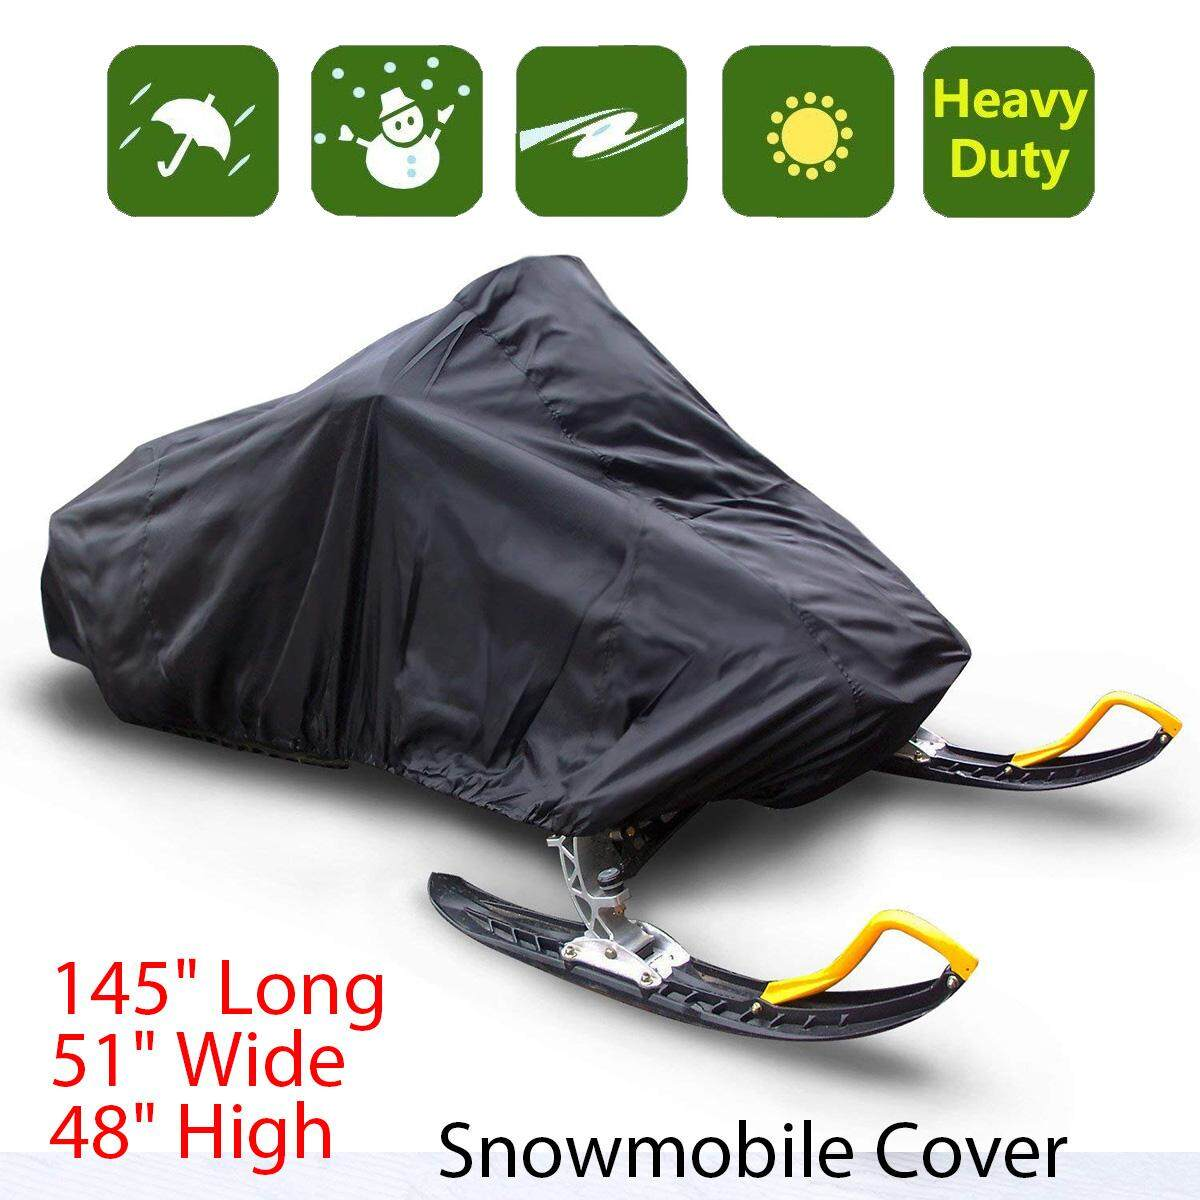 Budge Sportsman Waterproof Snowmobile Cover Fits Snowmobiles 145 Long X 51 Wide X 48 High, Sm-4 - Intl By Audew.